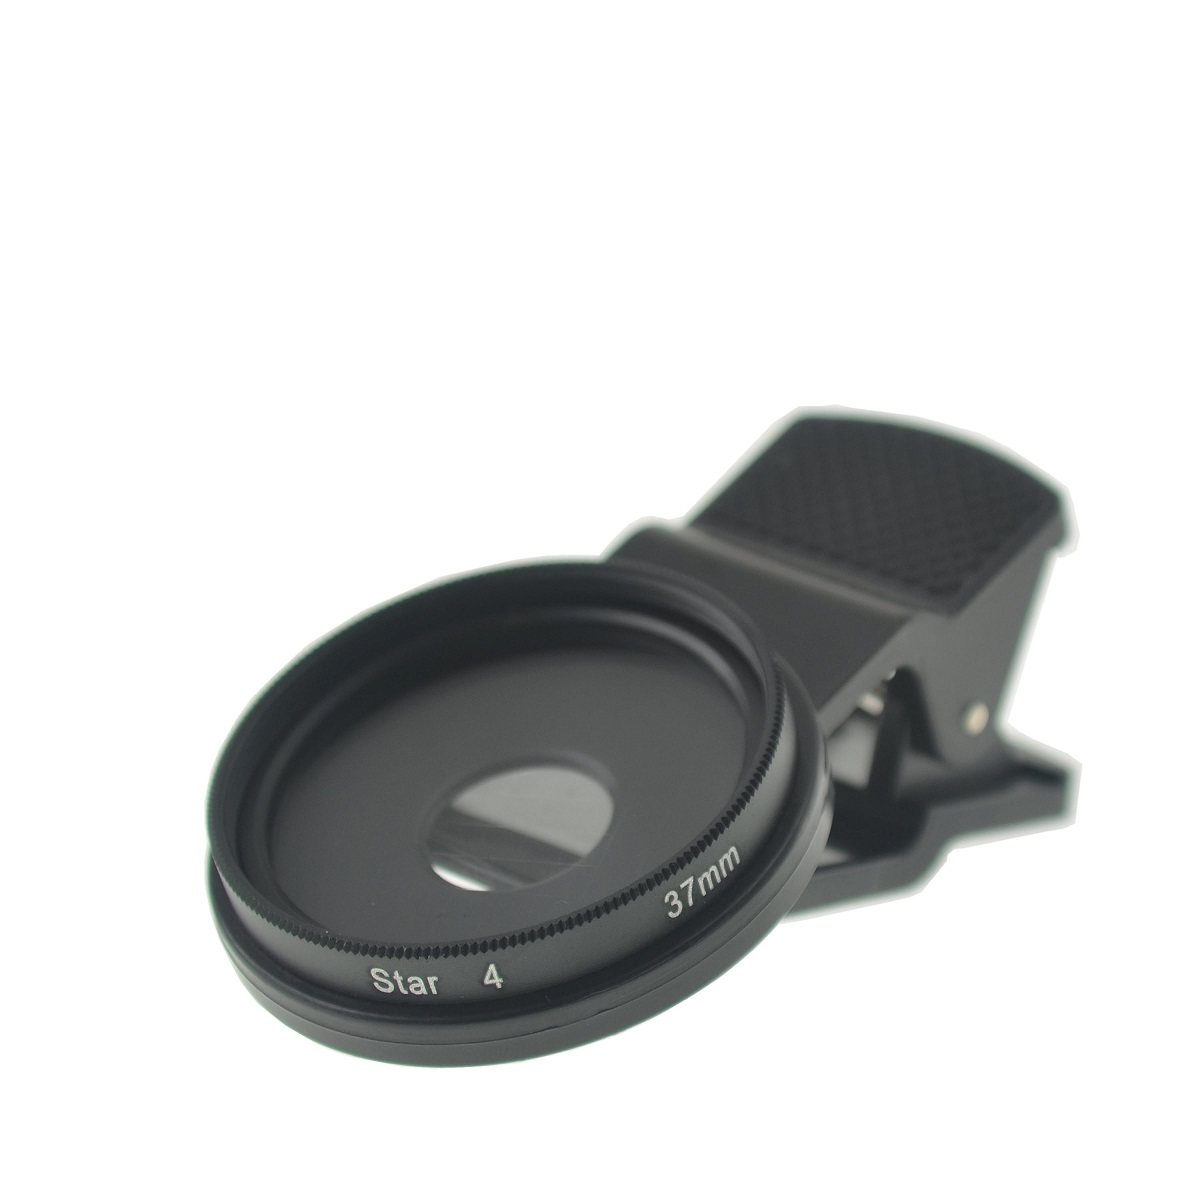 Cloth-Clip Pro 37mm Thread Cross Star Filter Lens (4 Points) for iPhone / iPad / Cell Phones